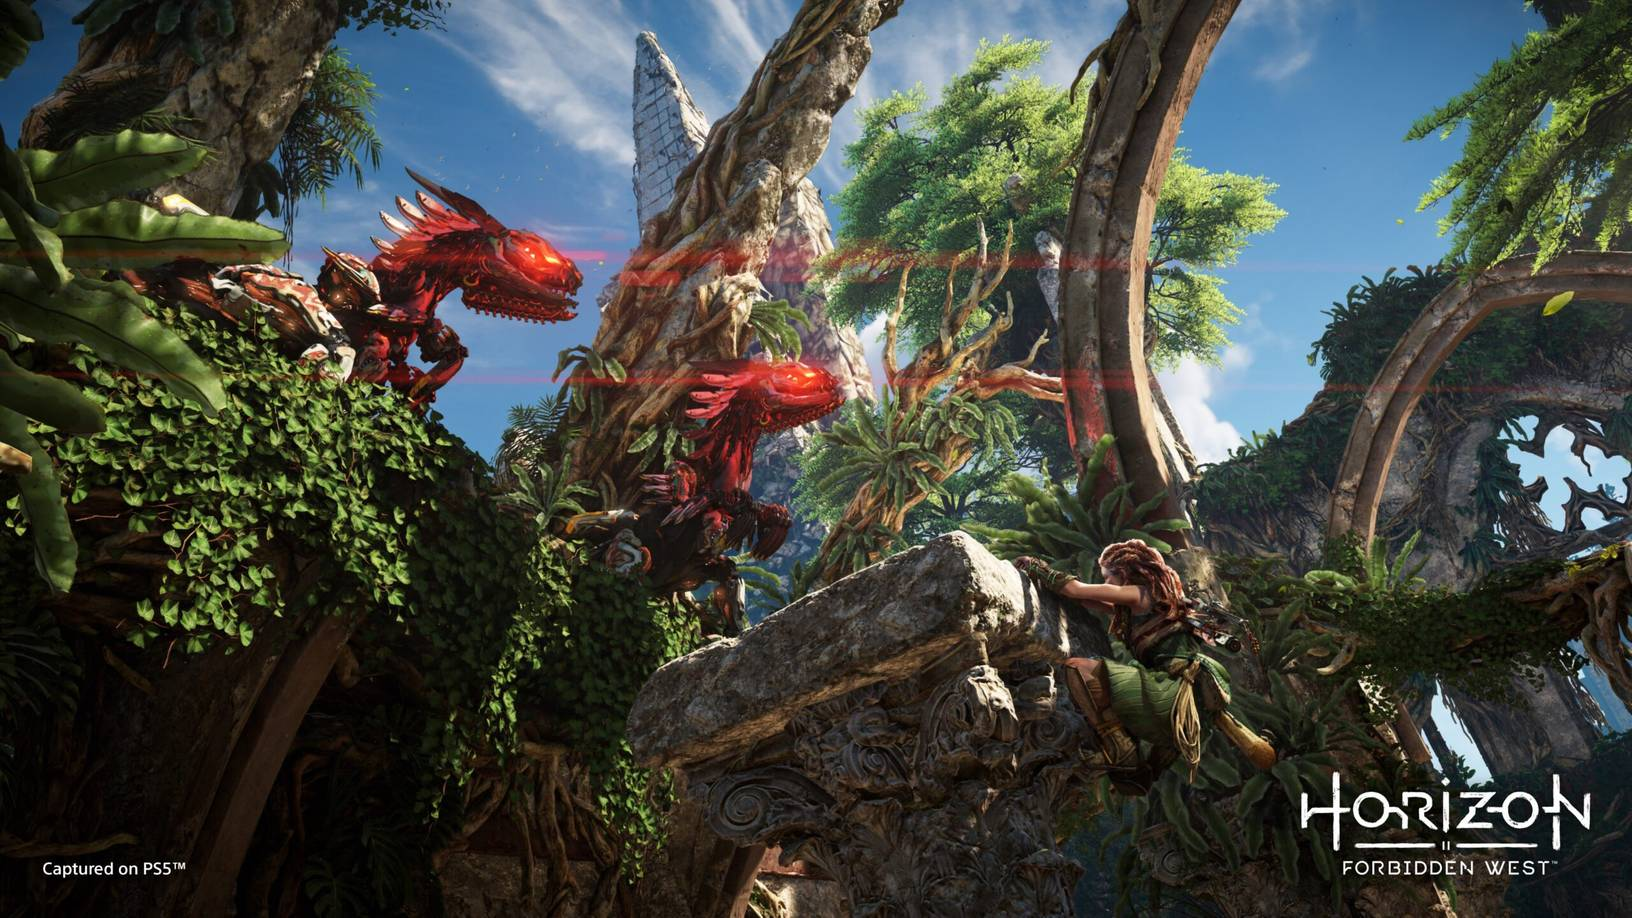 Two machine beasts overlooking Aloy, hanging from a ledge, in Horizon Forbidden West